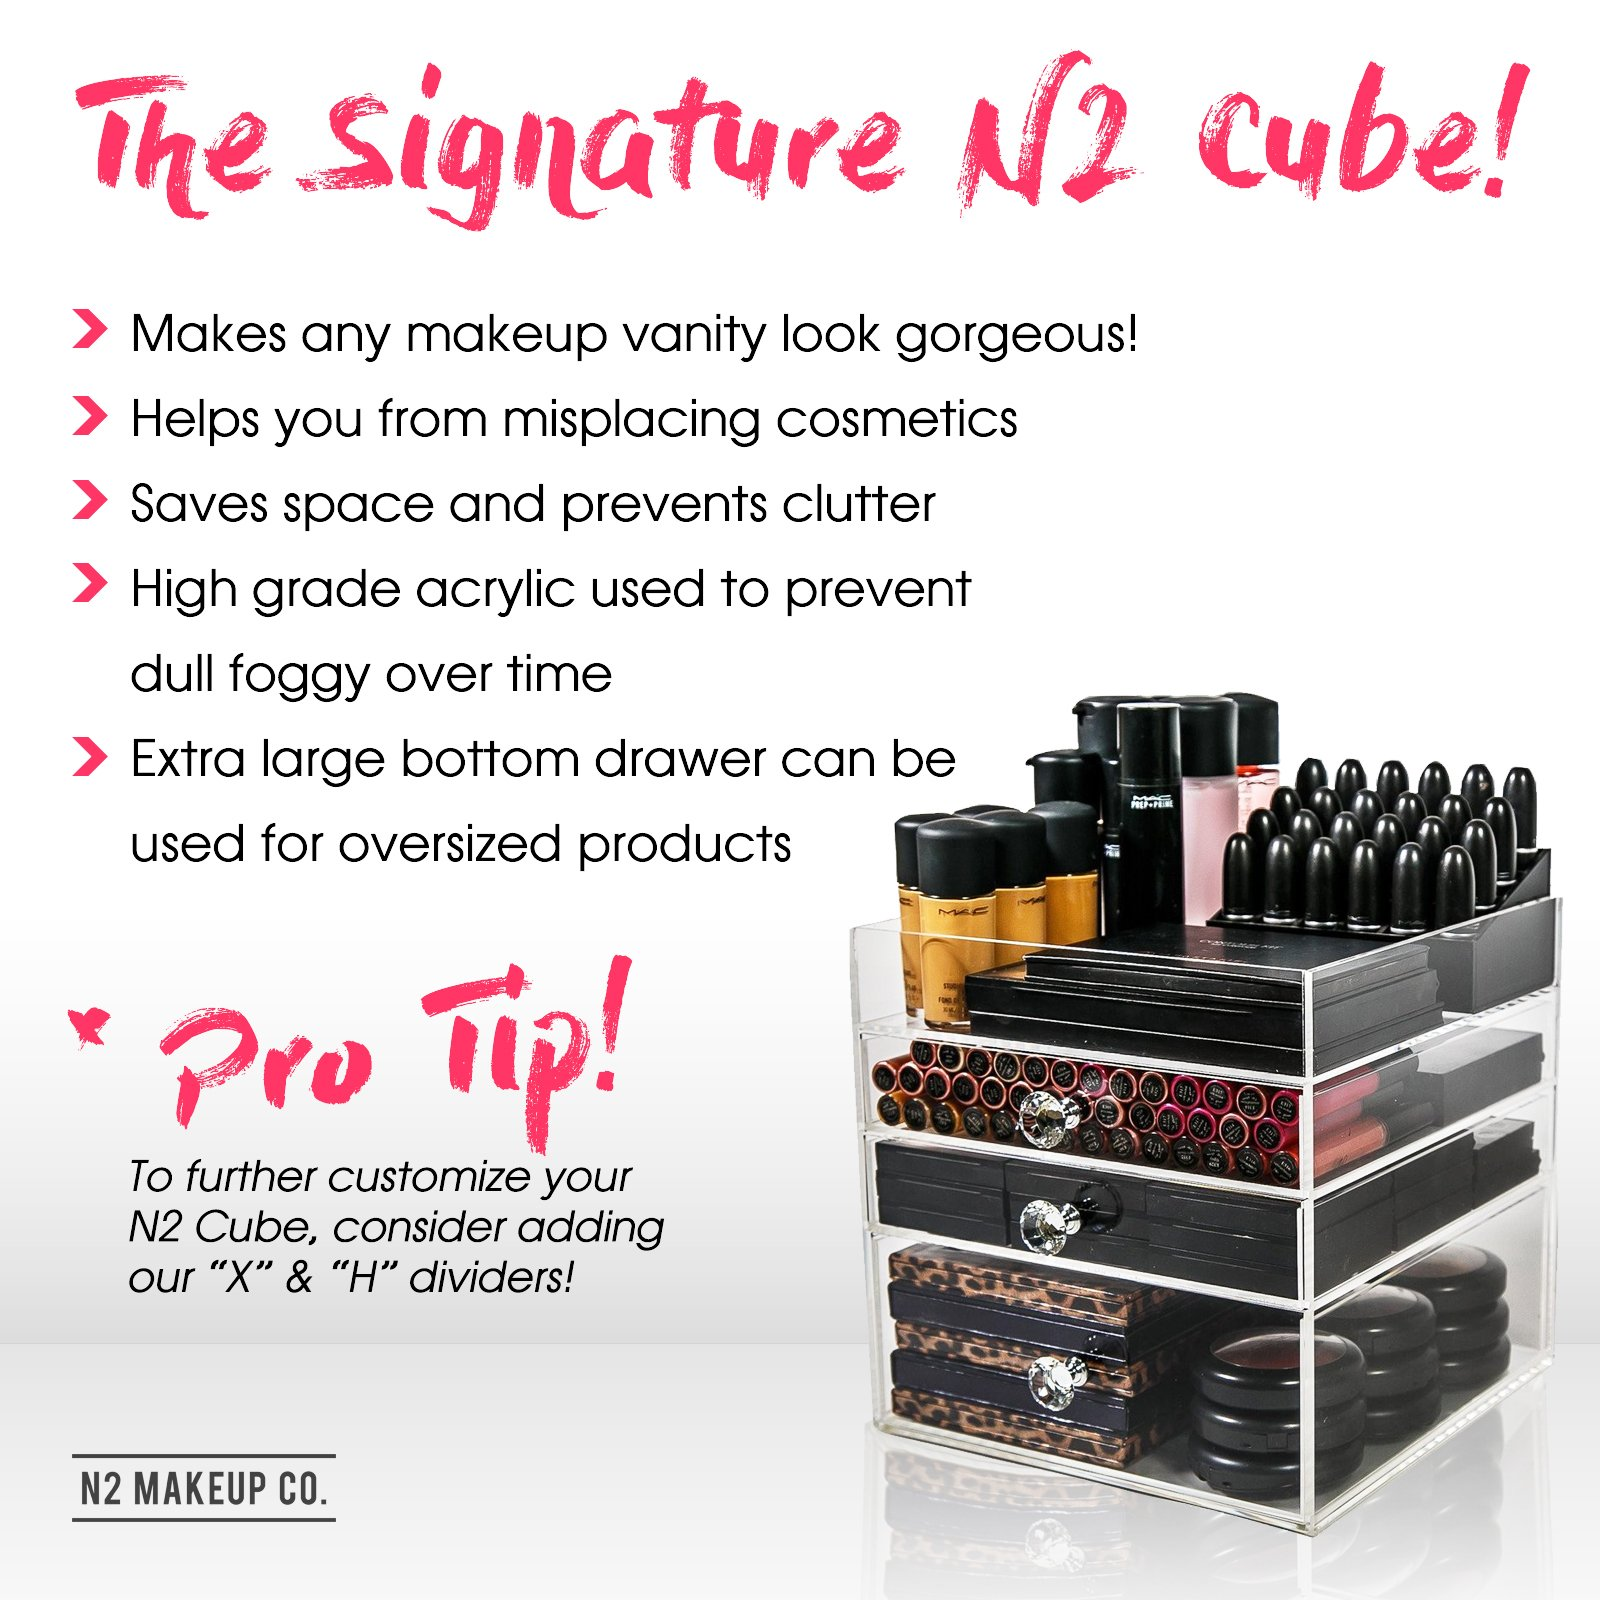 Acrylic Makeup Organizer Cube | 3 Drawers Storage Box For Vanity Tables | By N2 Makeup Co by N2 Makeup Co (Image #1)